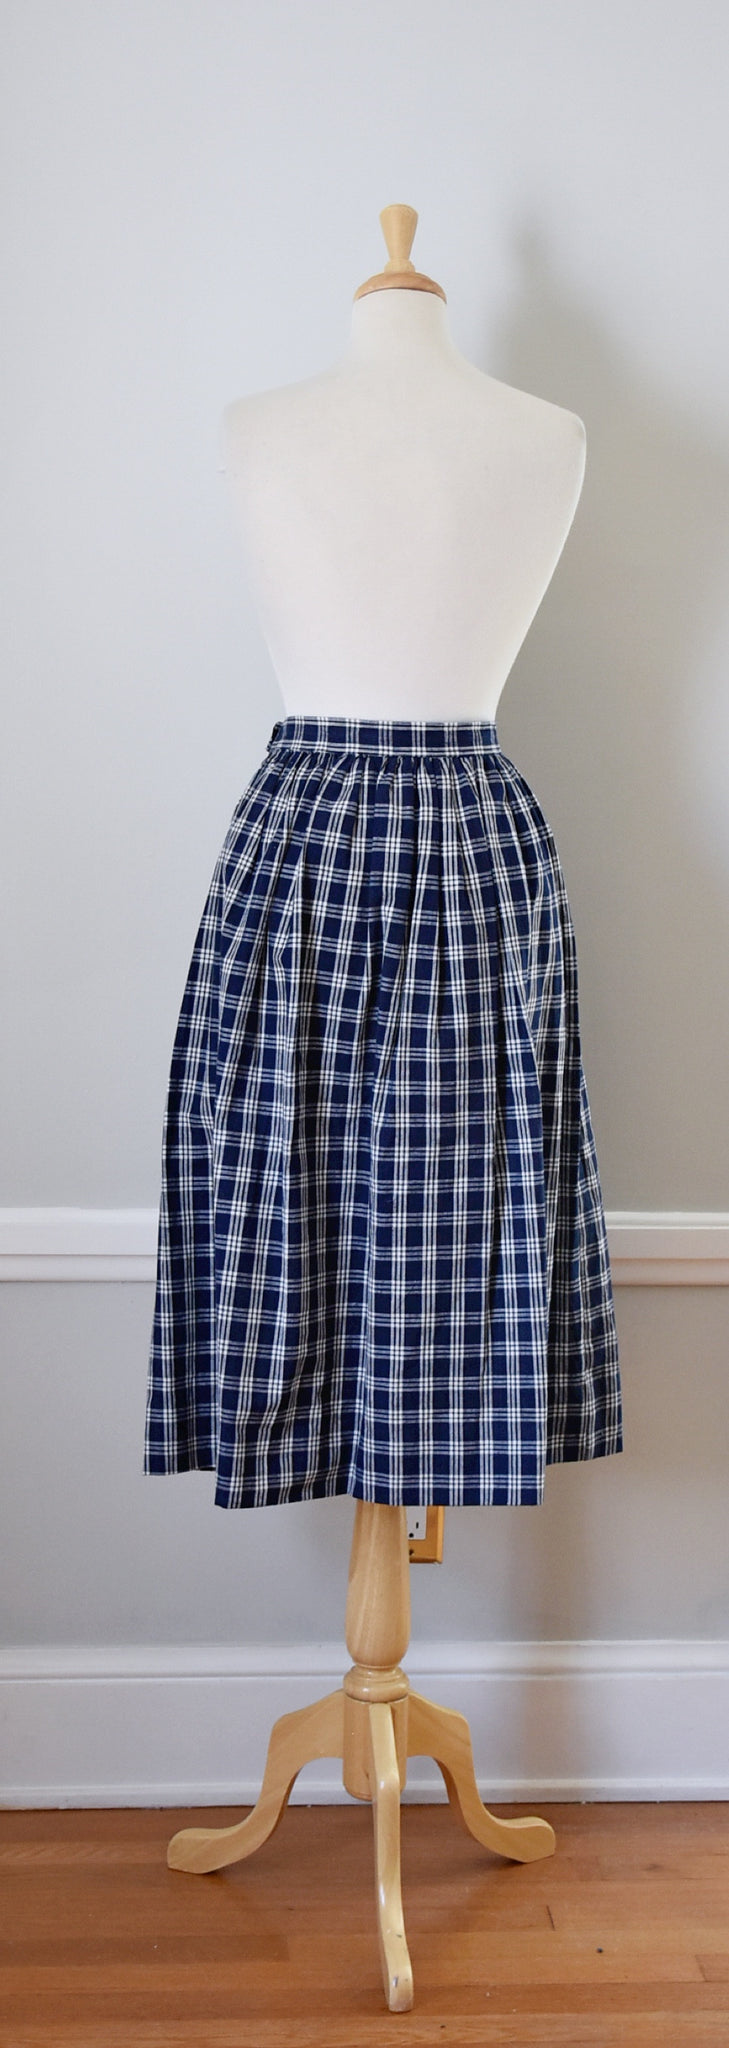 80s Vintage Blue and White Plaid Midi Skirt